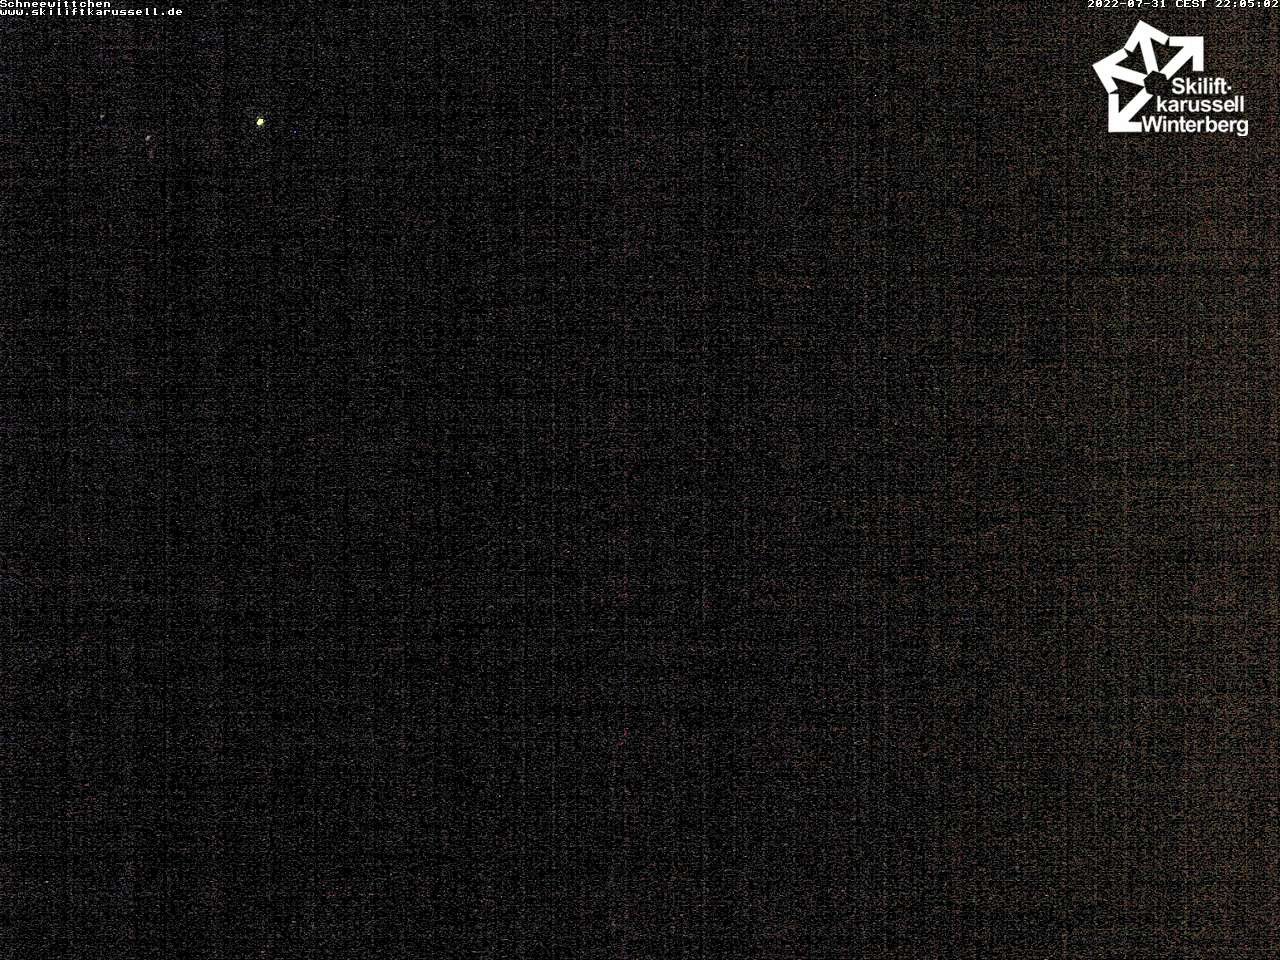 Skiliftkarussell Winterberg - Webcam 12